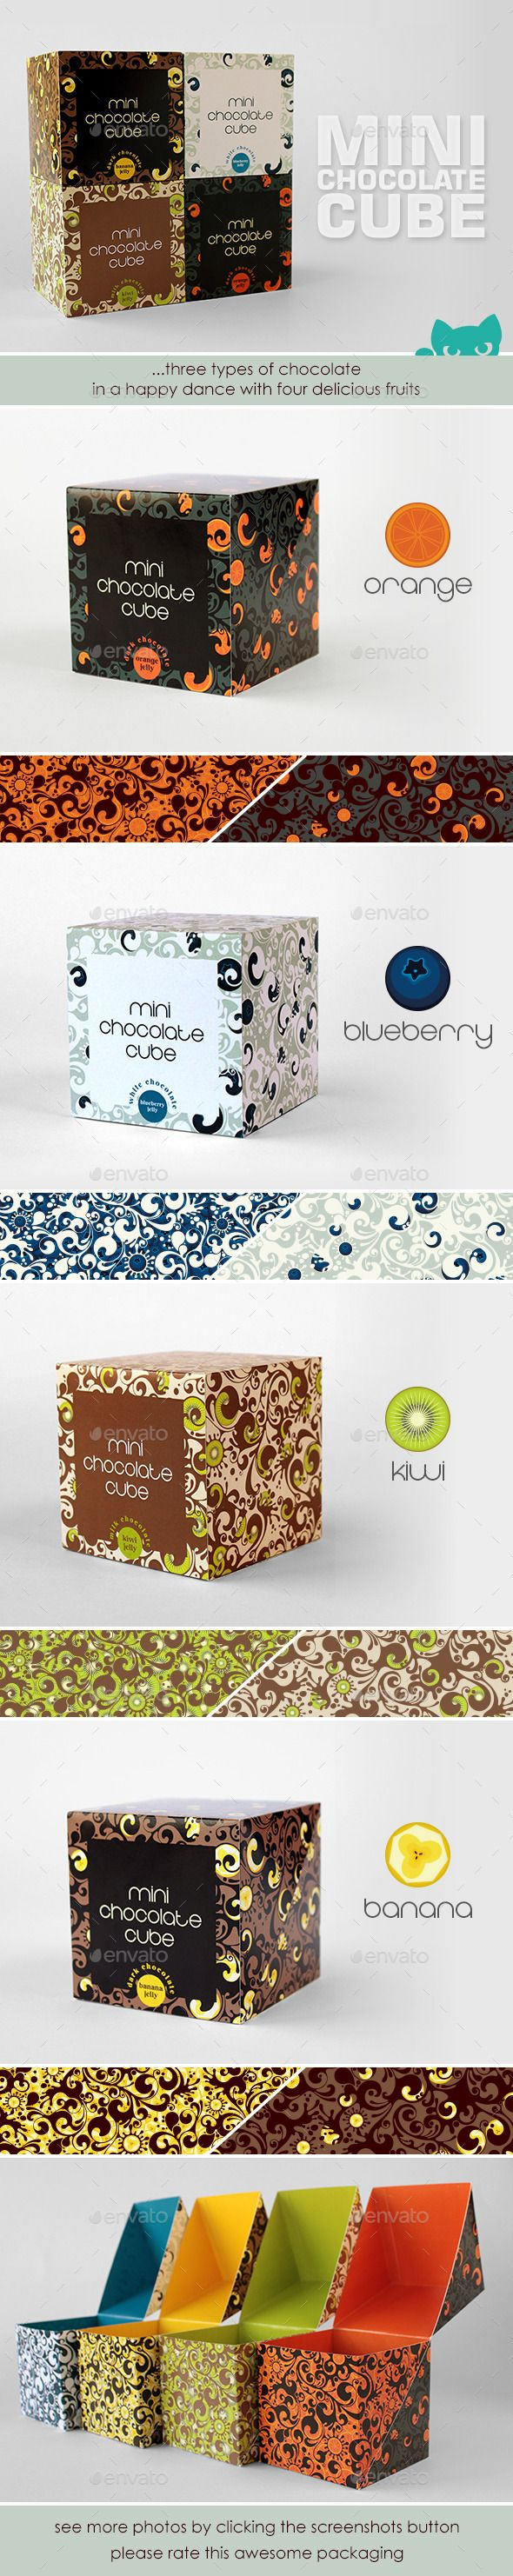 A cubic box with a simple basic shape and an elegant opening solution. Each box has a swirling melting chocolate design with individual color schemes. Three types of chocolate, dark, milk and white in a happy dance with four delicious fruits, blackberry, kiwi, orange and banana.